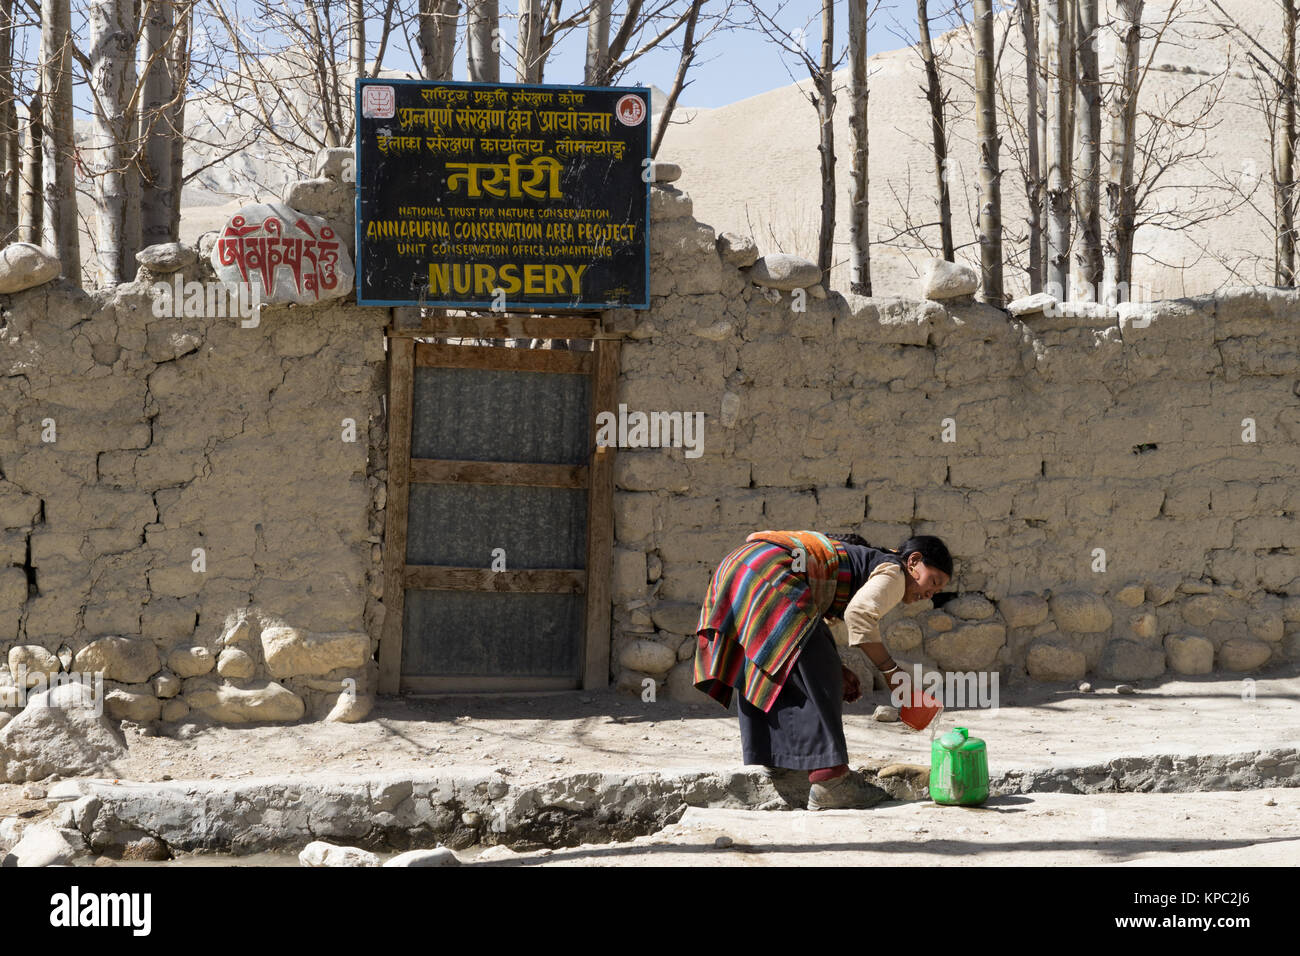 Tibetan woman filling a watering can from the communal  water supply in Lo Manthang, Upper Mustang region, Nepal. - Stock Image